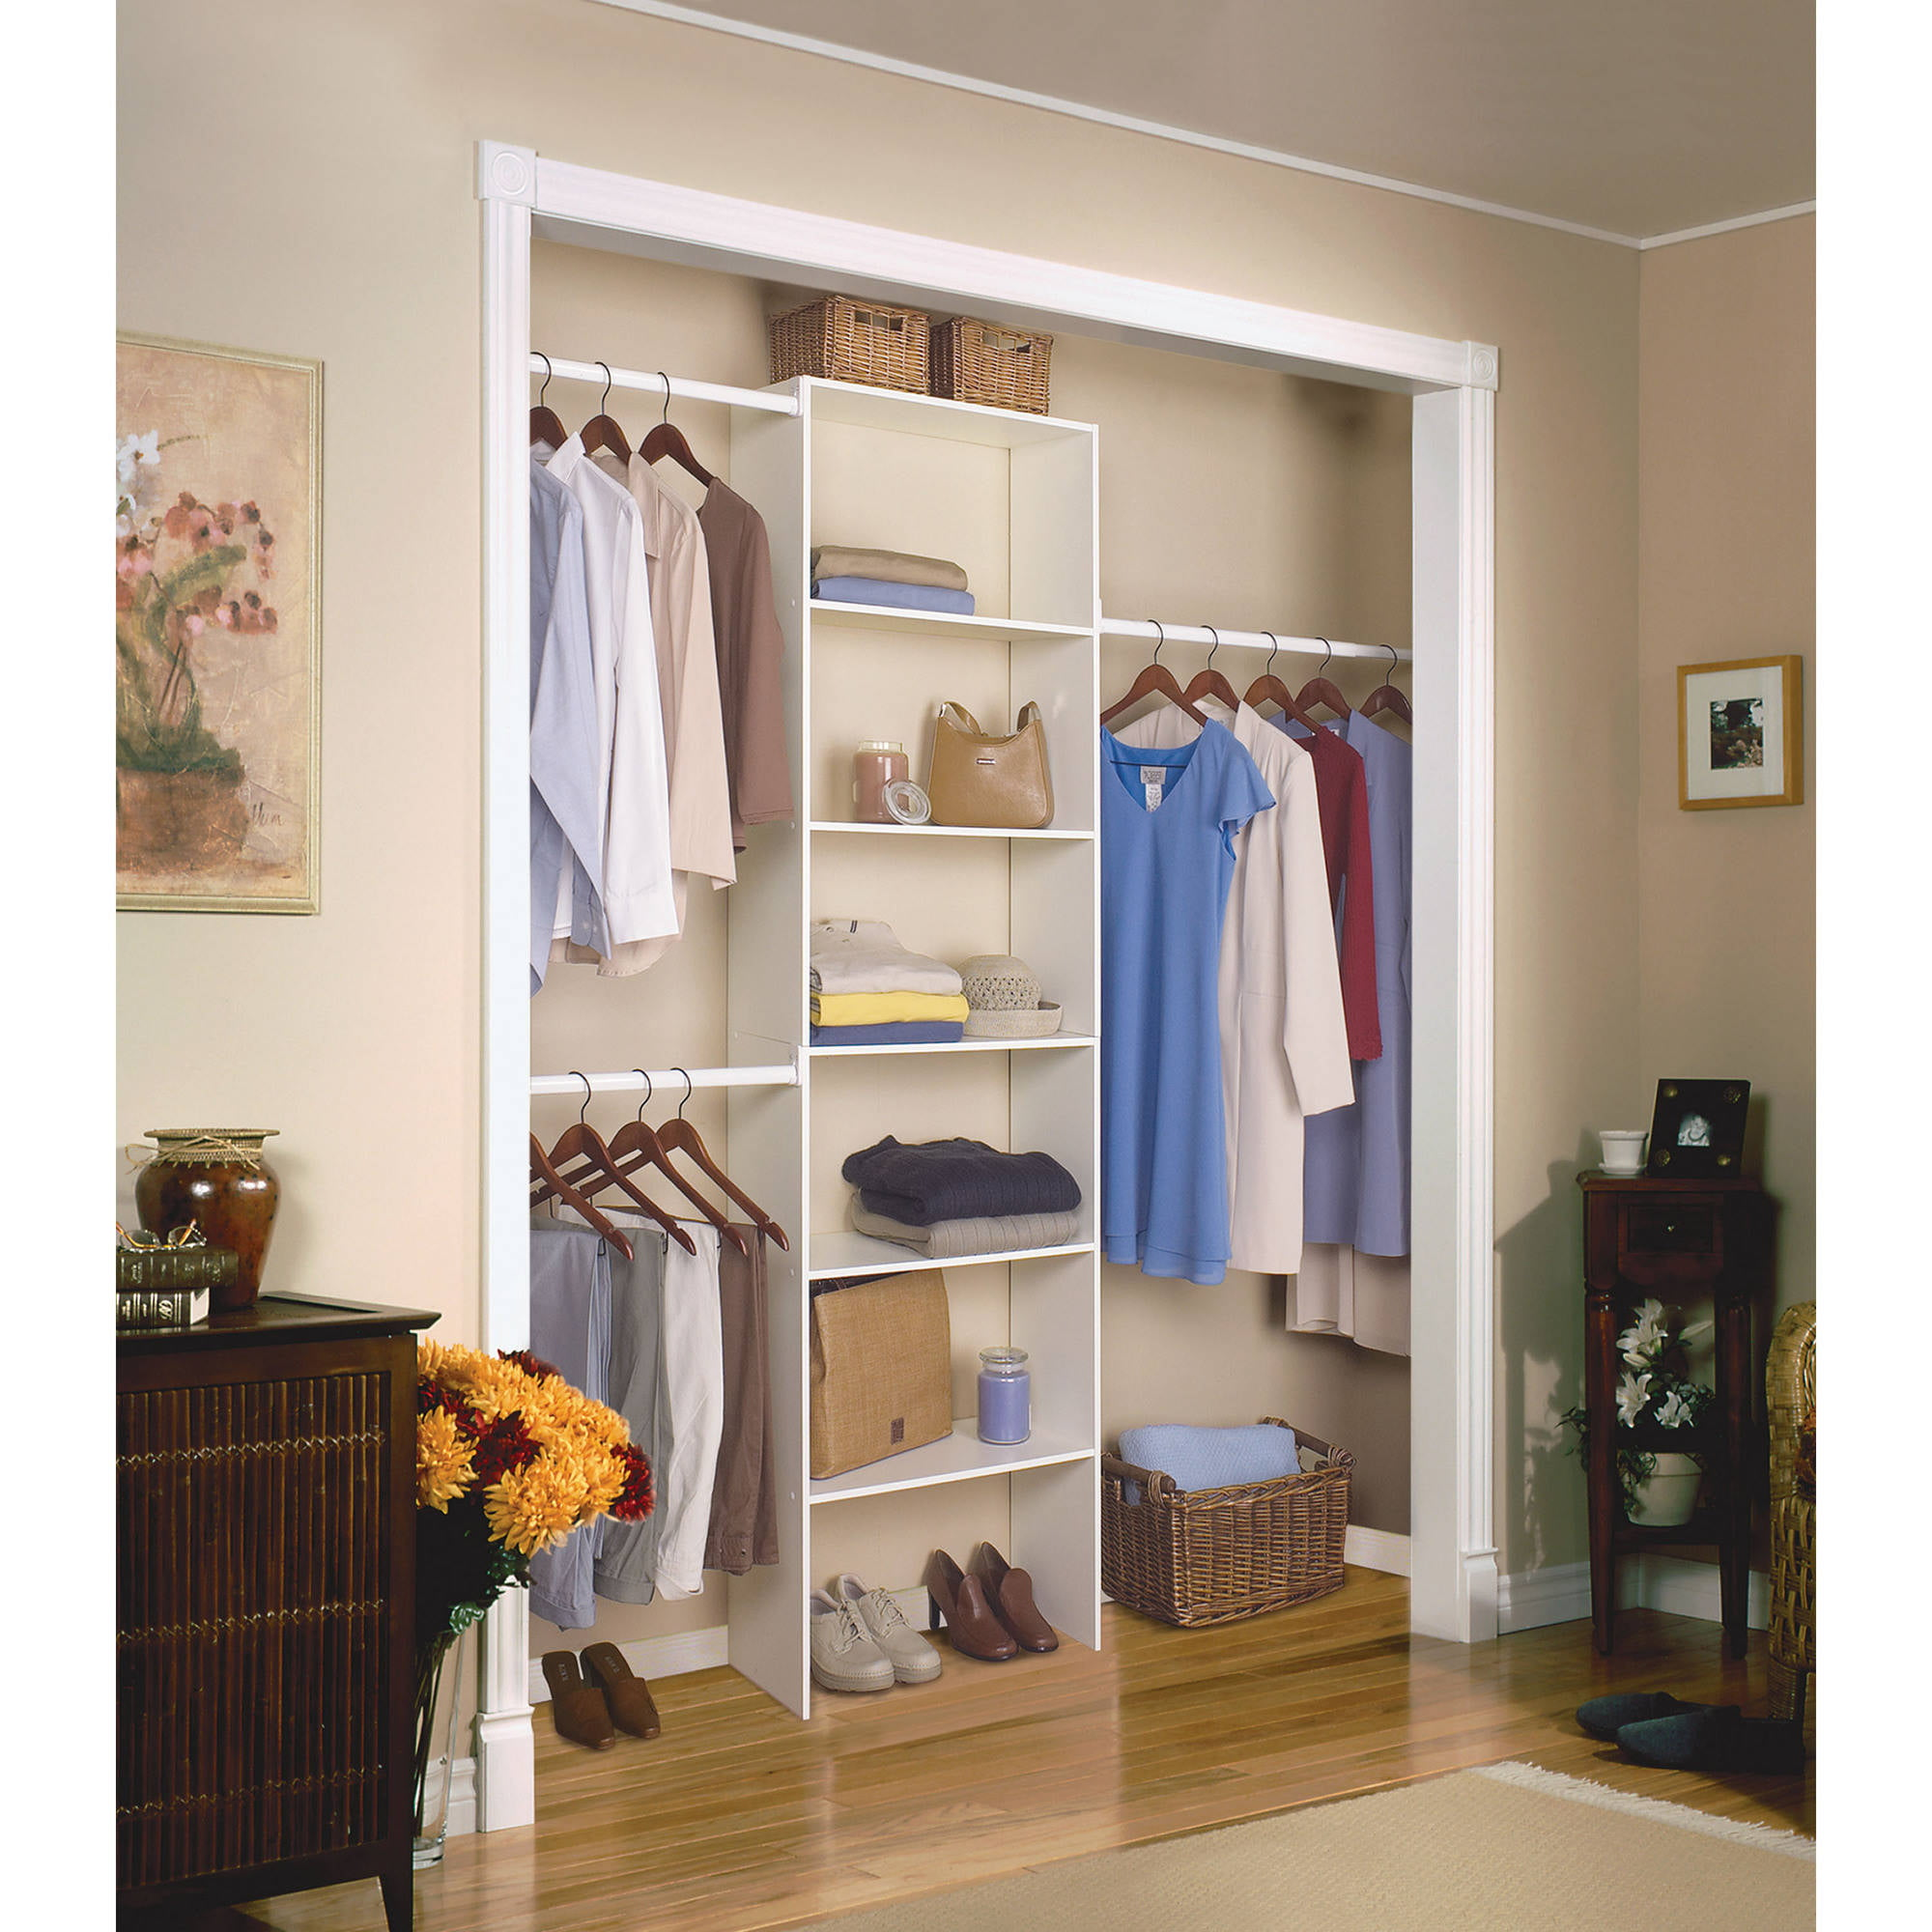 Contemporary walmart rubbermaid closet organizers Pictures of closet organizers